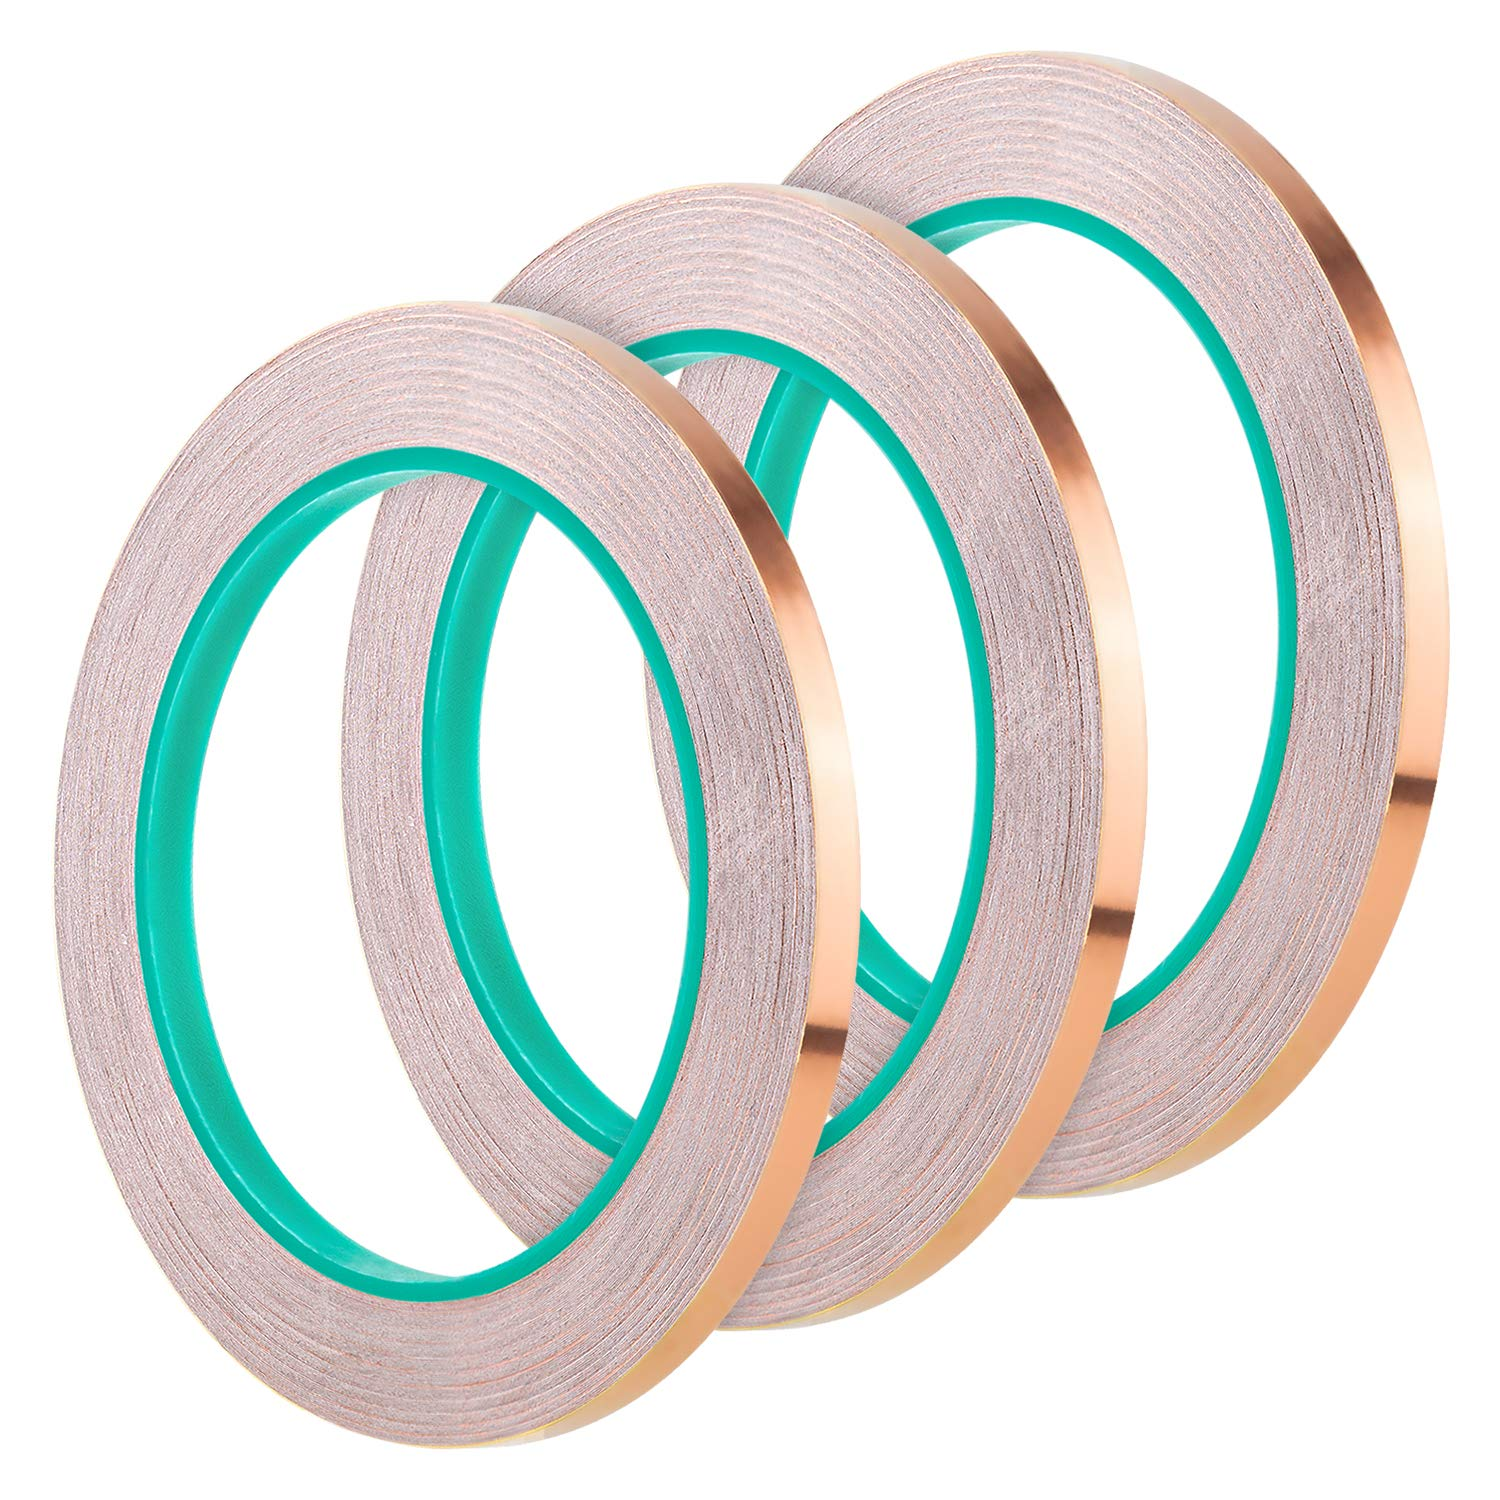 AIEX 3 Pack 1/4 Inch Copper Foil Tape Double-Sided Conductive Adhesive for EMI Shielding, Stained Glass, Electrical Repairs, Slug Repellent, Grounding